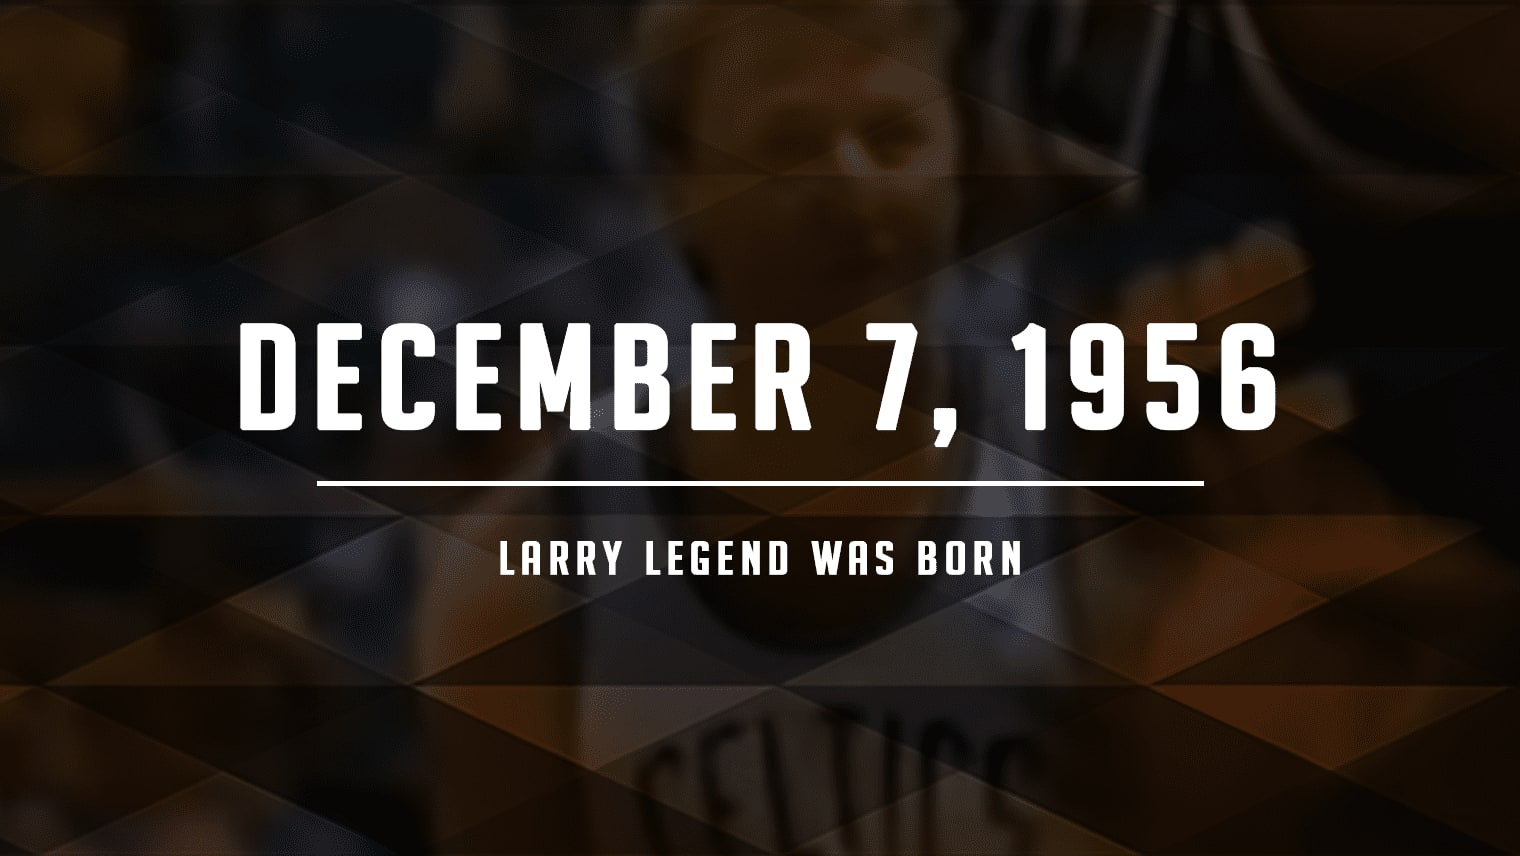 On this day 63 years ago, Larry Bird was born in West Baden Springs, Indiana. He went on to become one of the most iconic basketball players of all time.